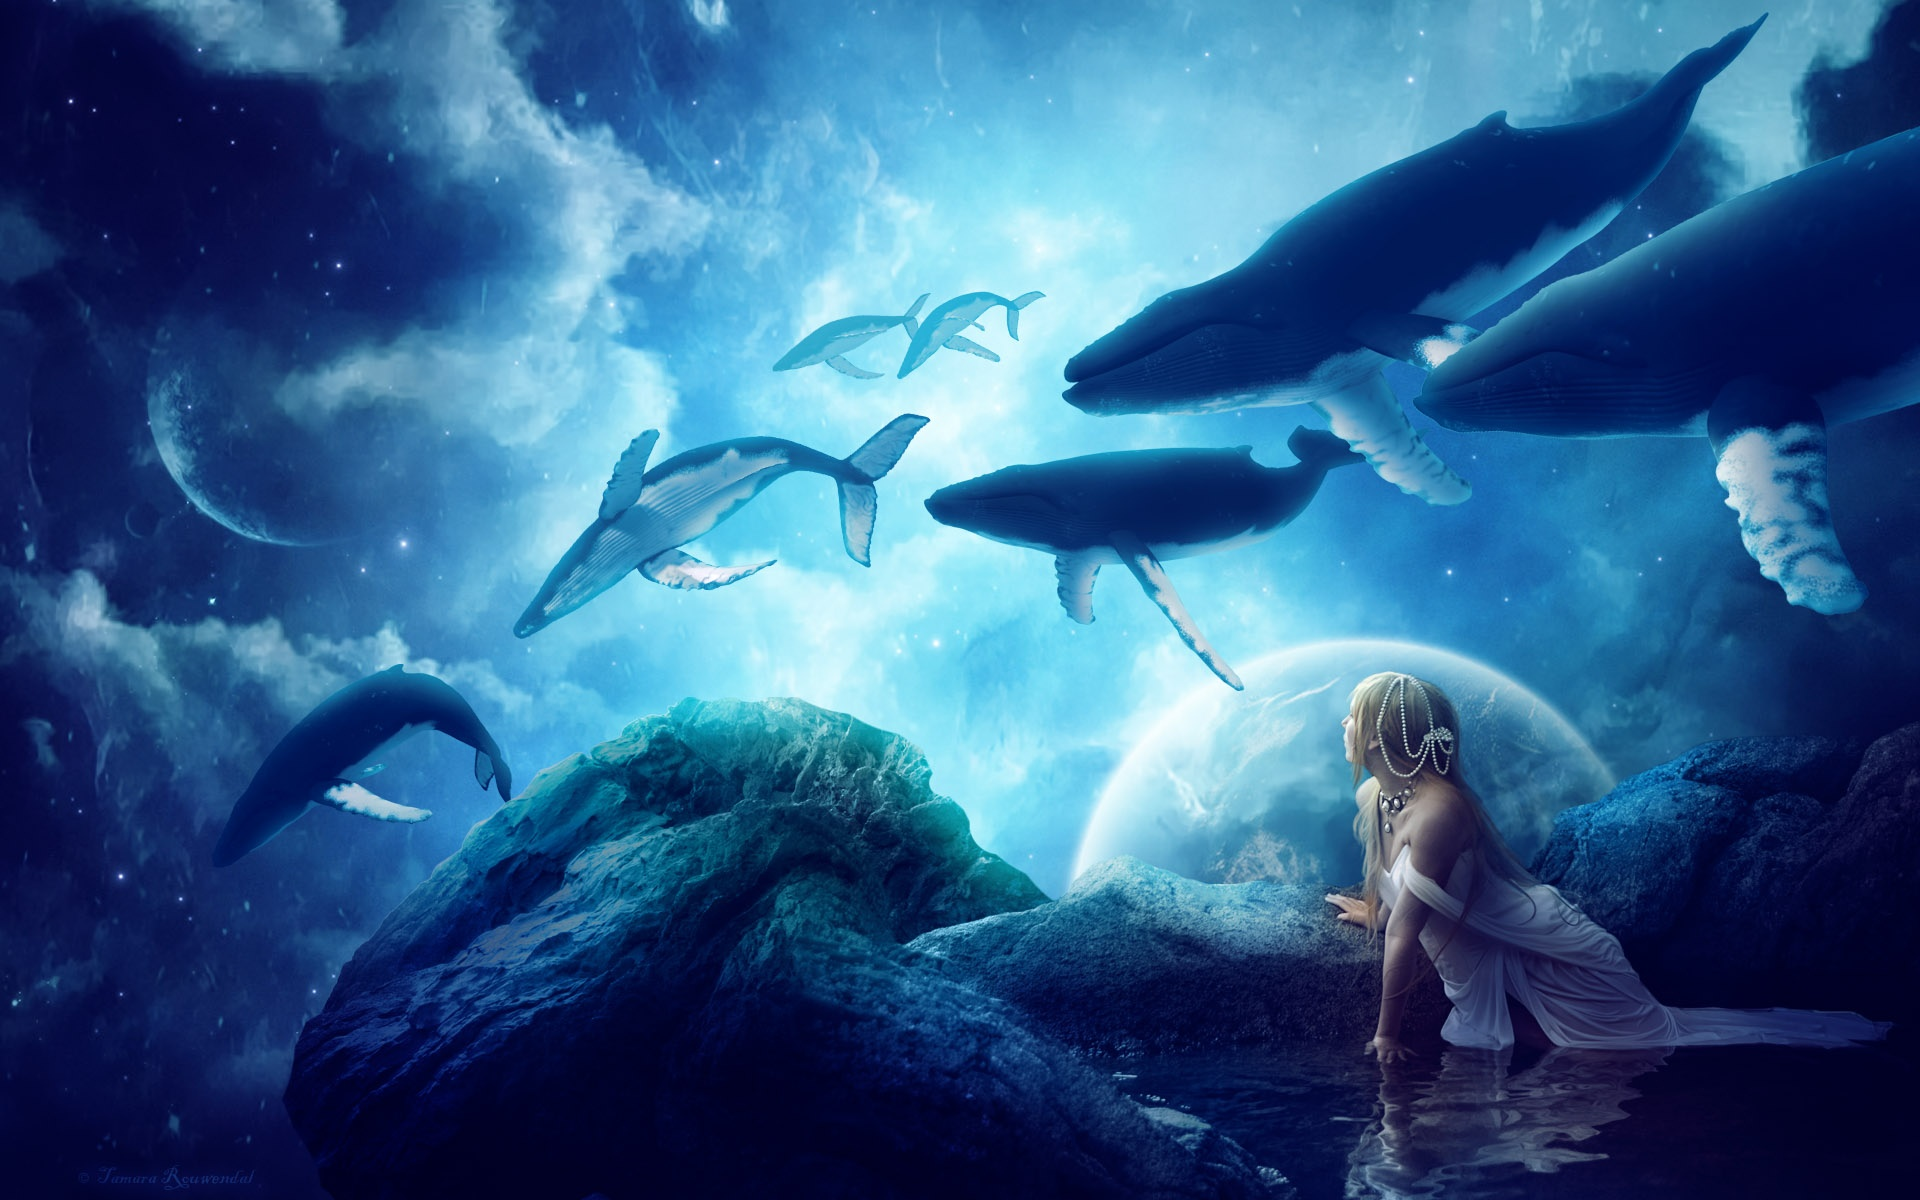 Whales Dream Wallpapers In Jpg Format For Free Download